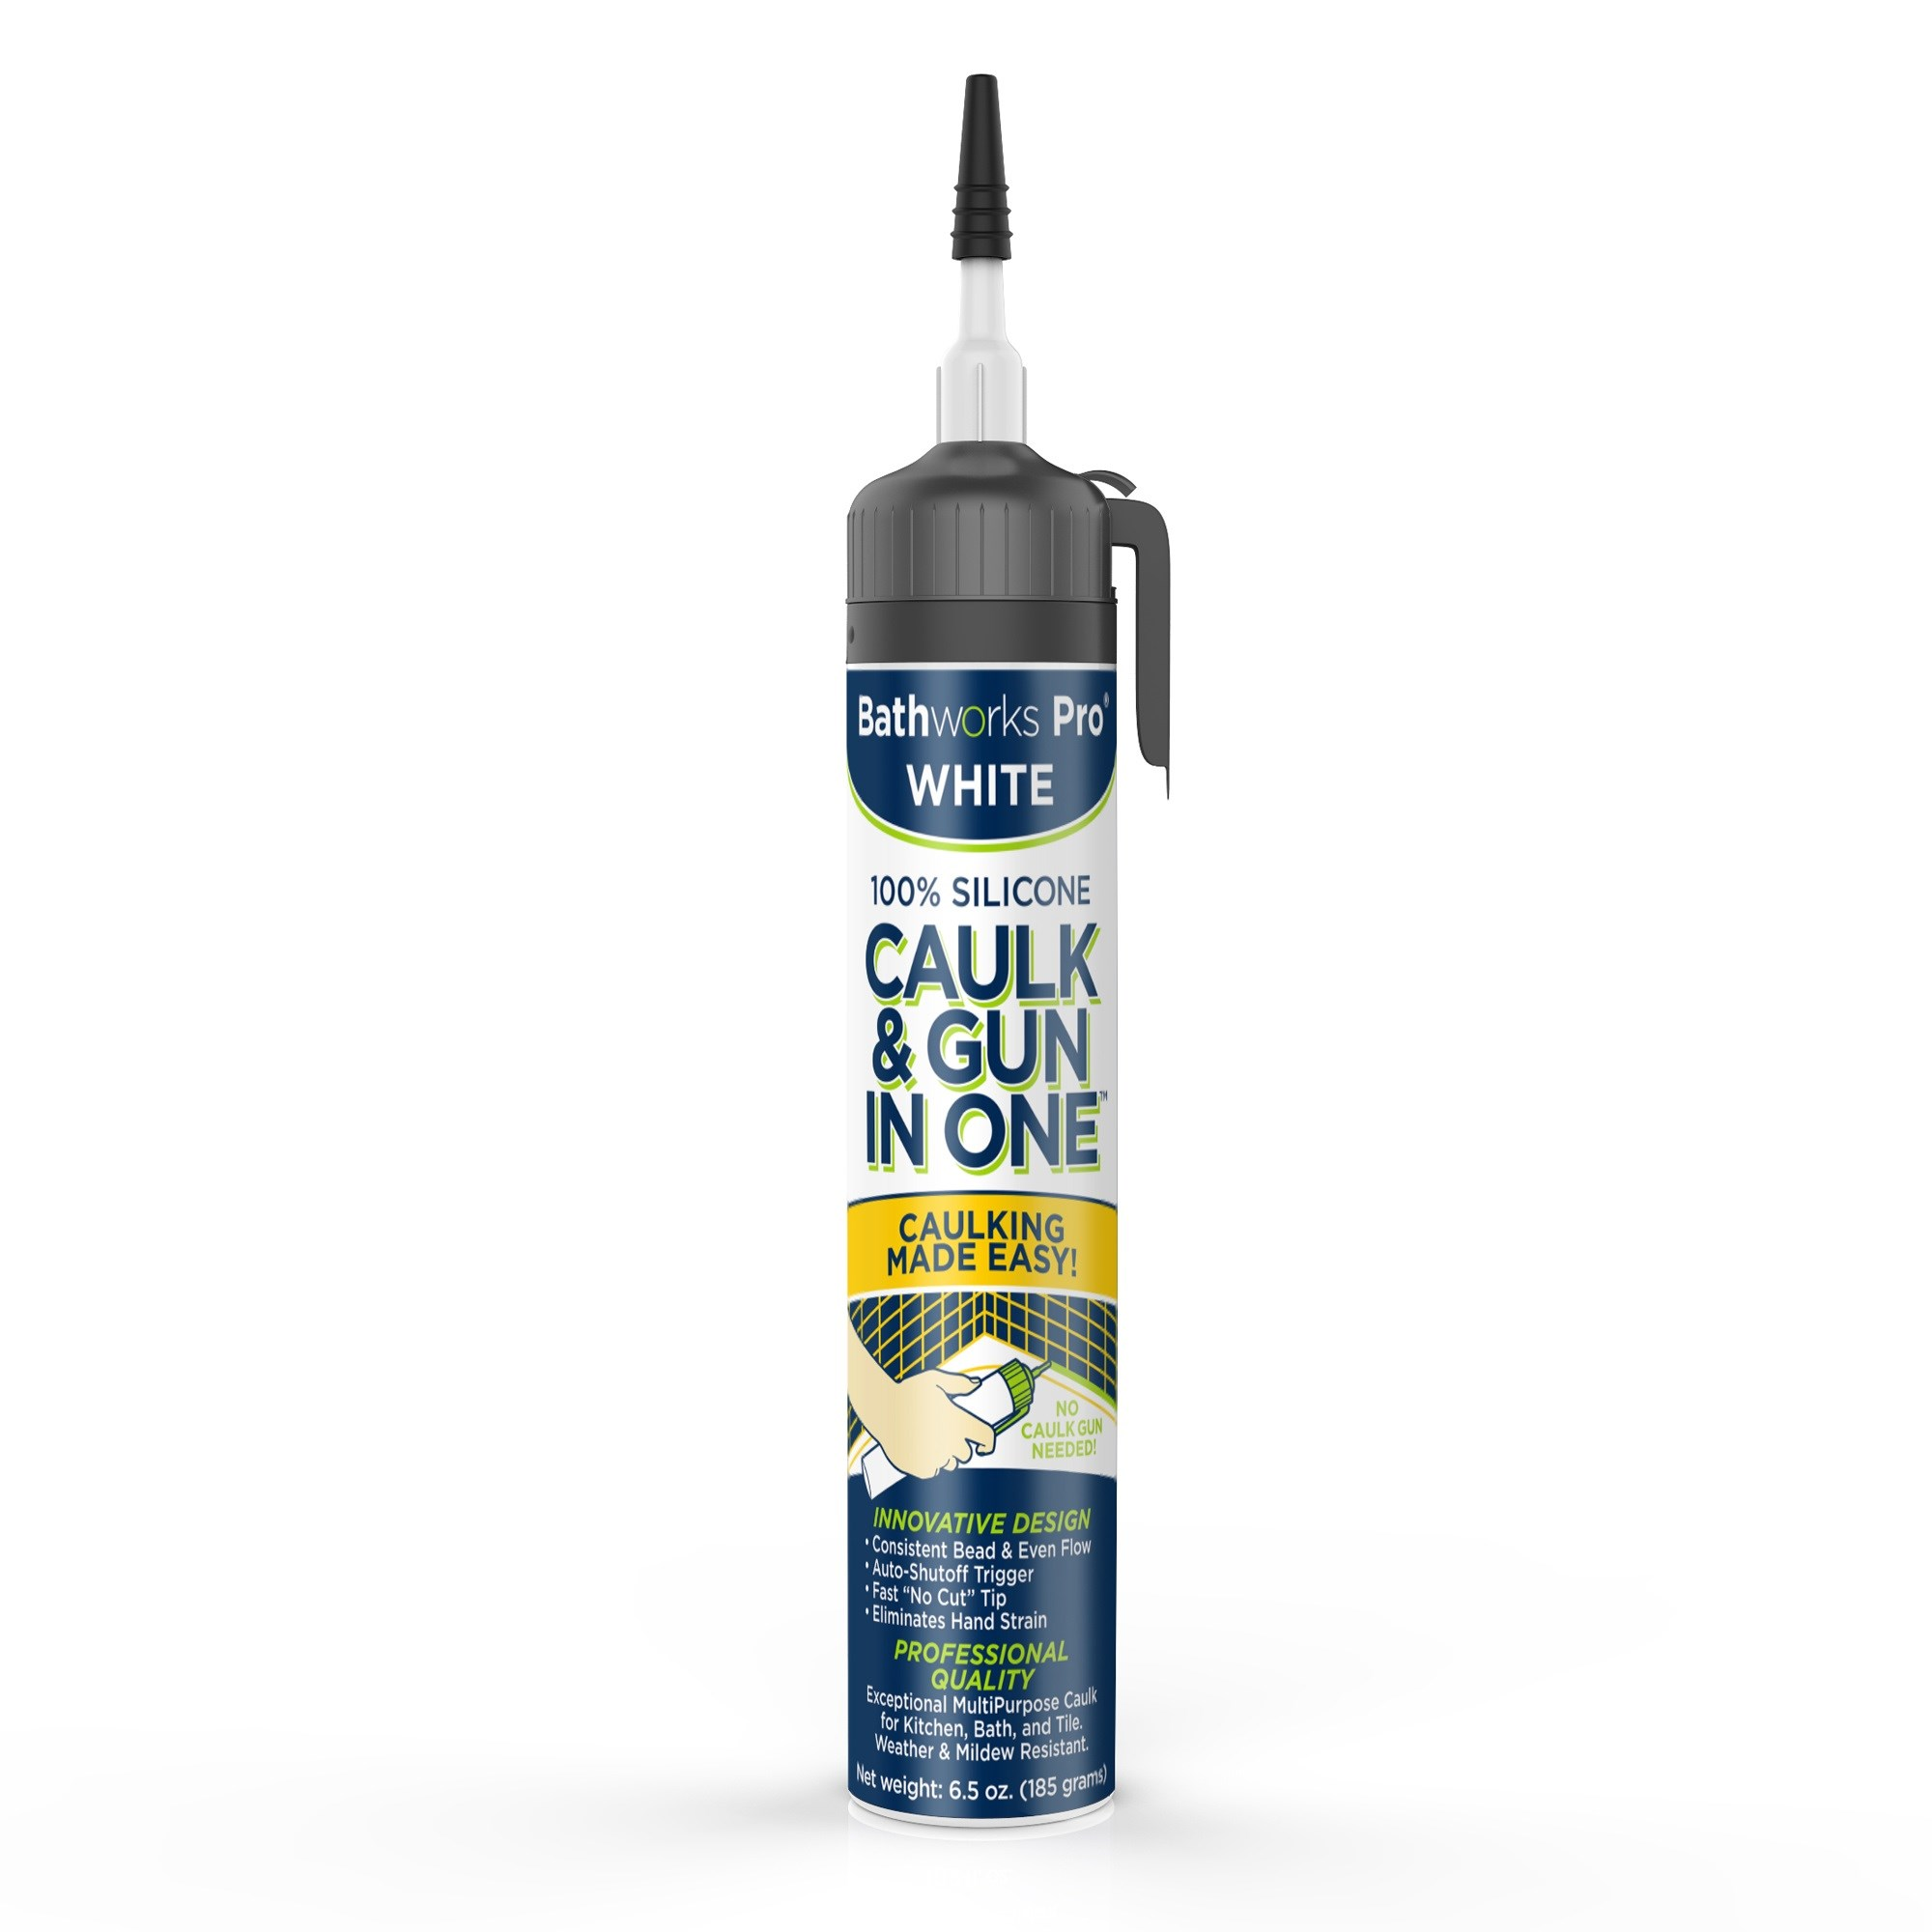 Caulk & Gun in One!